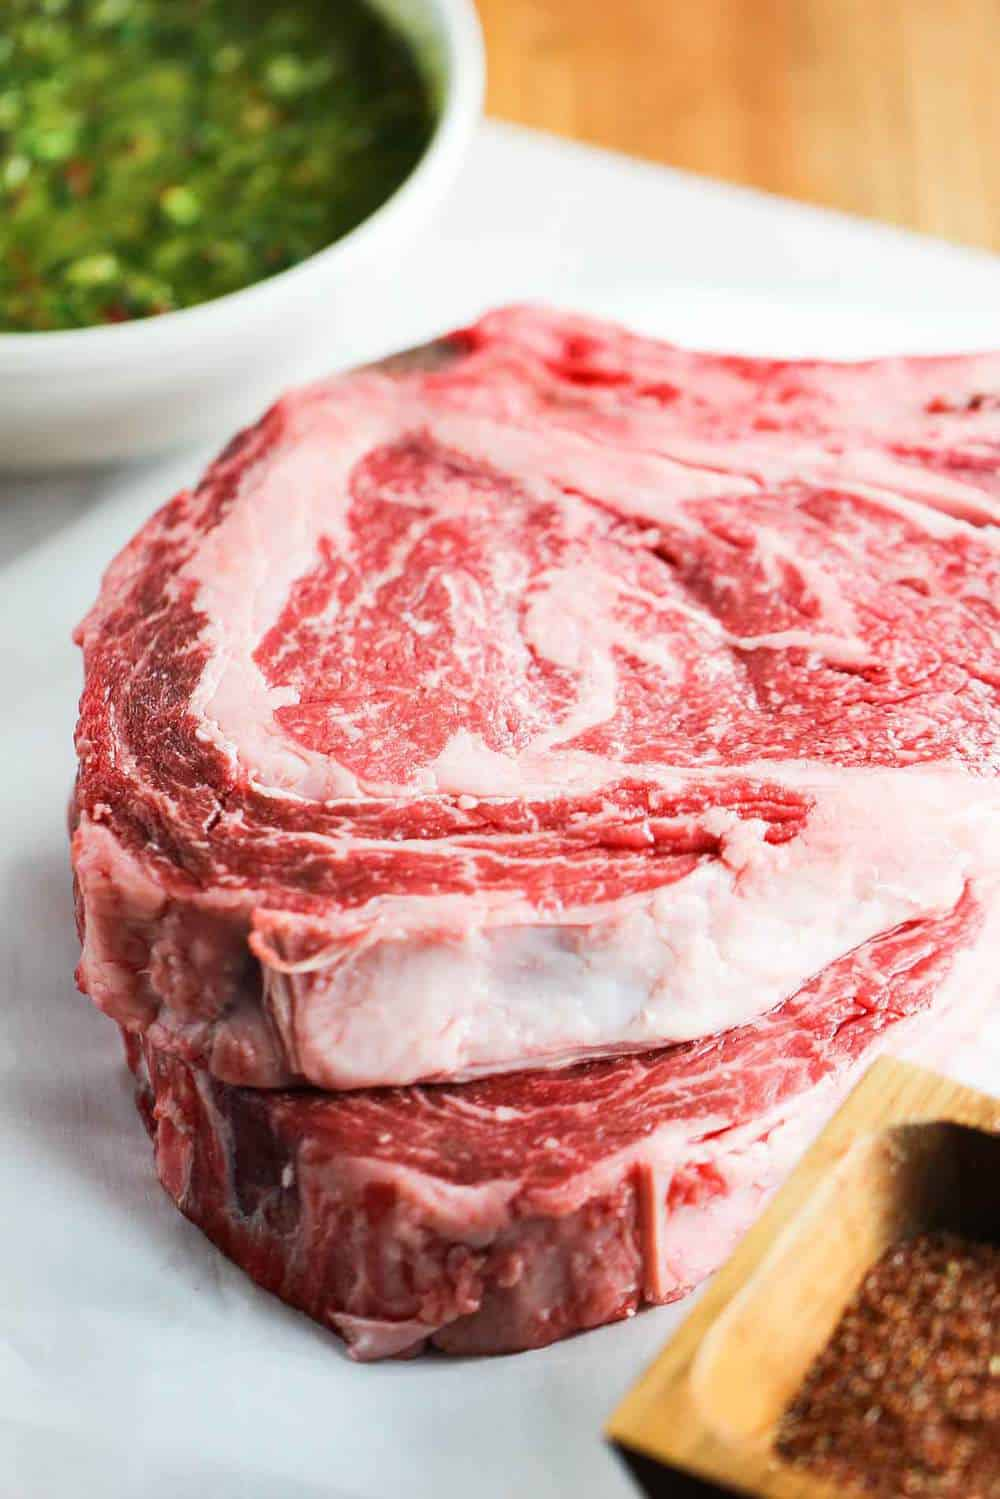 It is the marbling in this ribeye steak that makes it so juicy